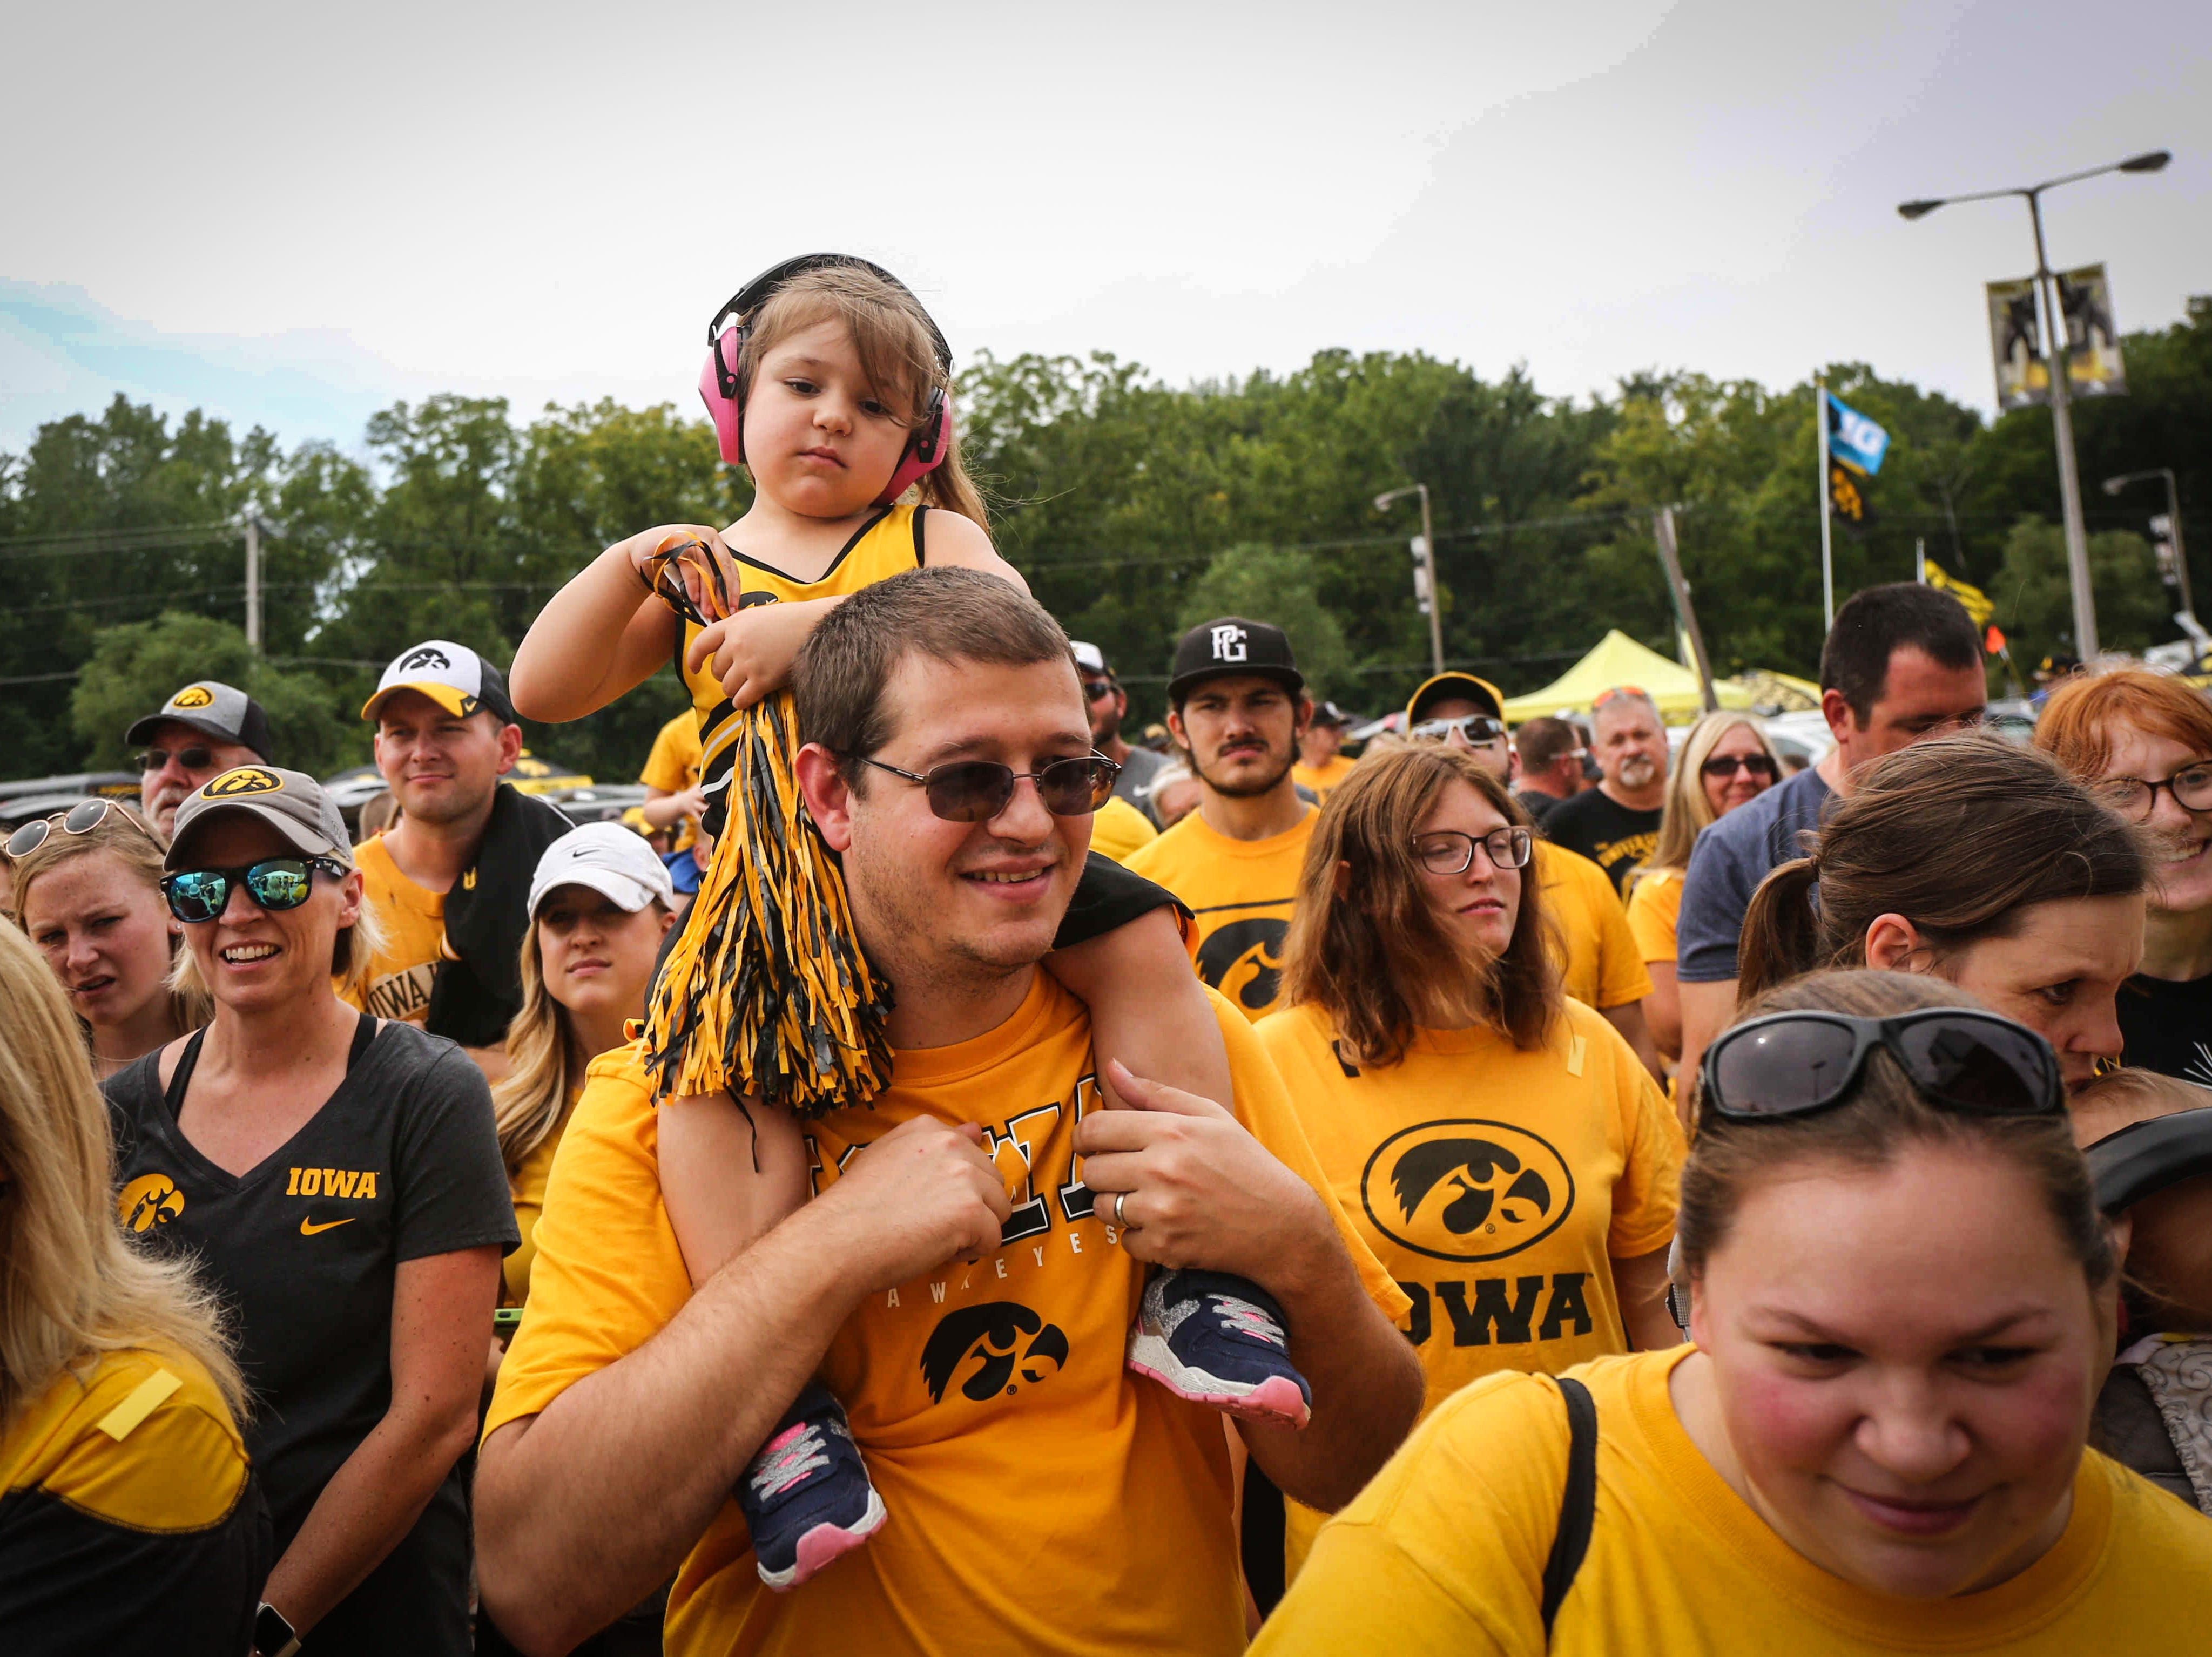 Fans gather to hear the Iowa band prior to kickoff against Northern Illinois on Saturday, Sept. 1, 2018, in Iowa City.